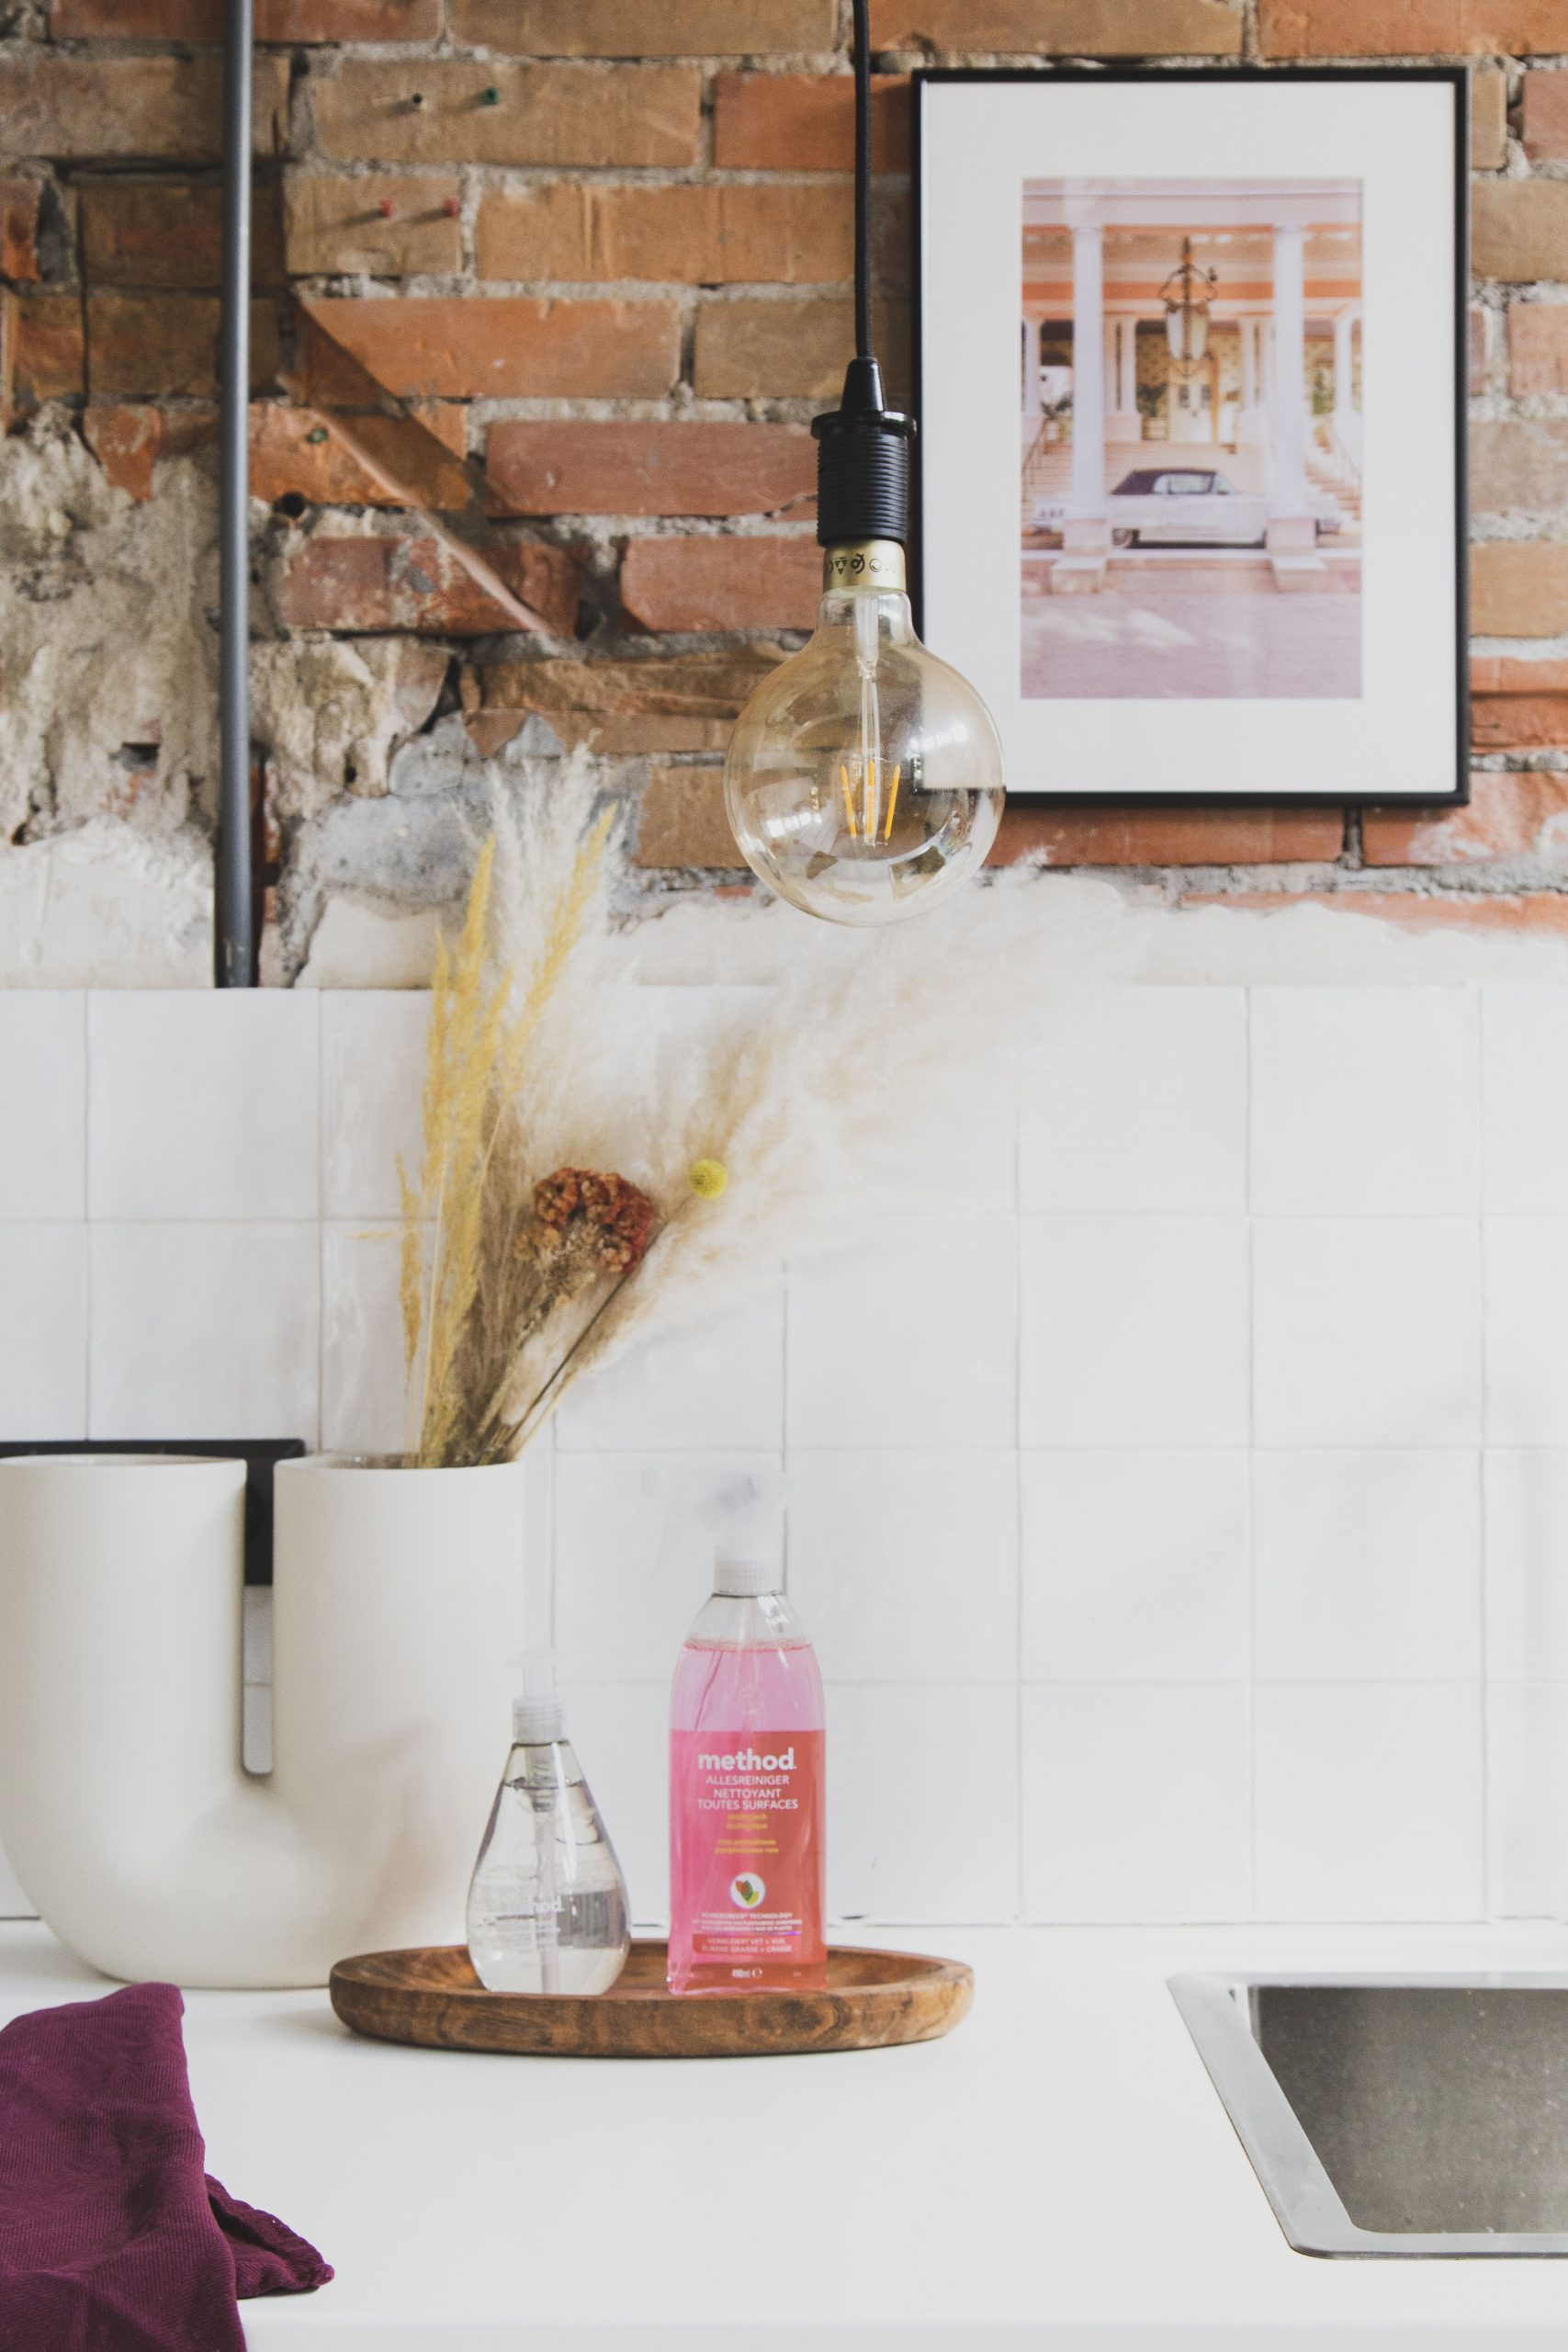 My top 5 cleaning tips with Method